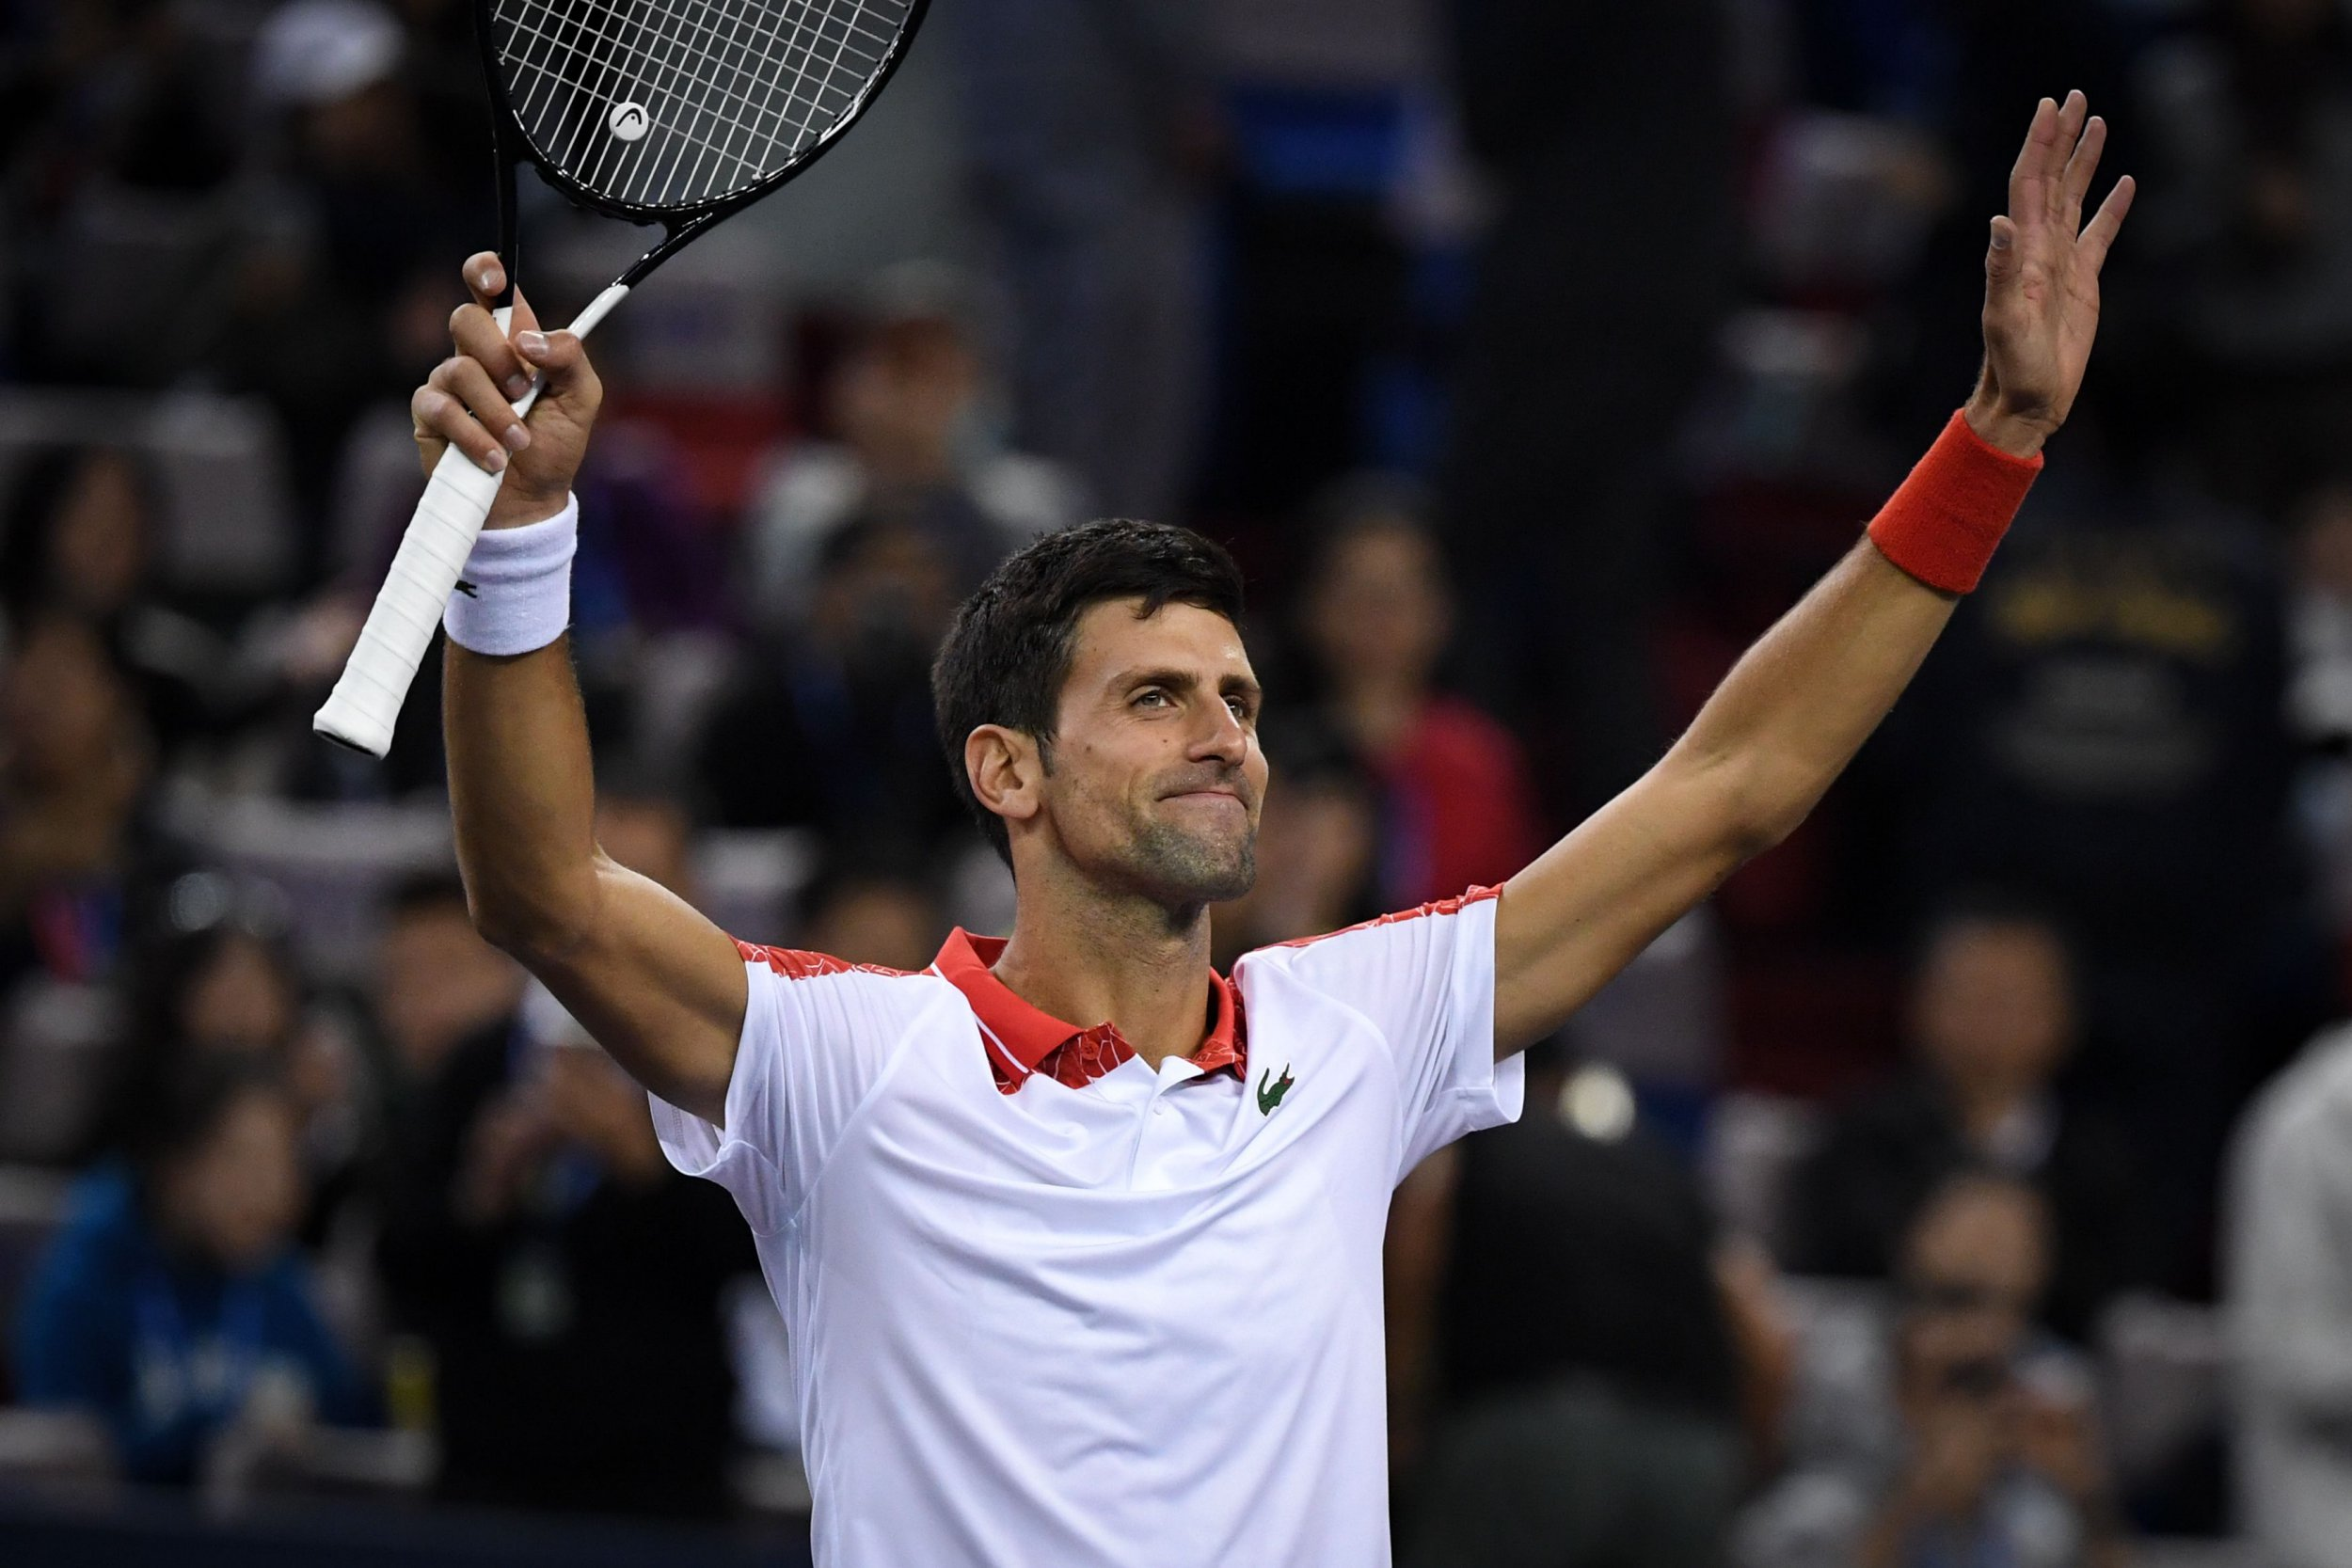 Serbia's Novak Djokovic celebrates after winning against Germany's Alexander Zverev during their men's singles semi-finals match at the Shanghai Masters tennis tournament on October 13, 2018. (Photo by WANG ZHAO / AFP)WANG ZHAO/AFP/Getty Images